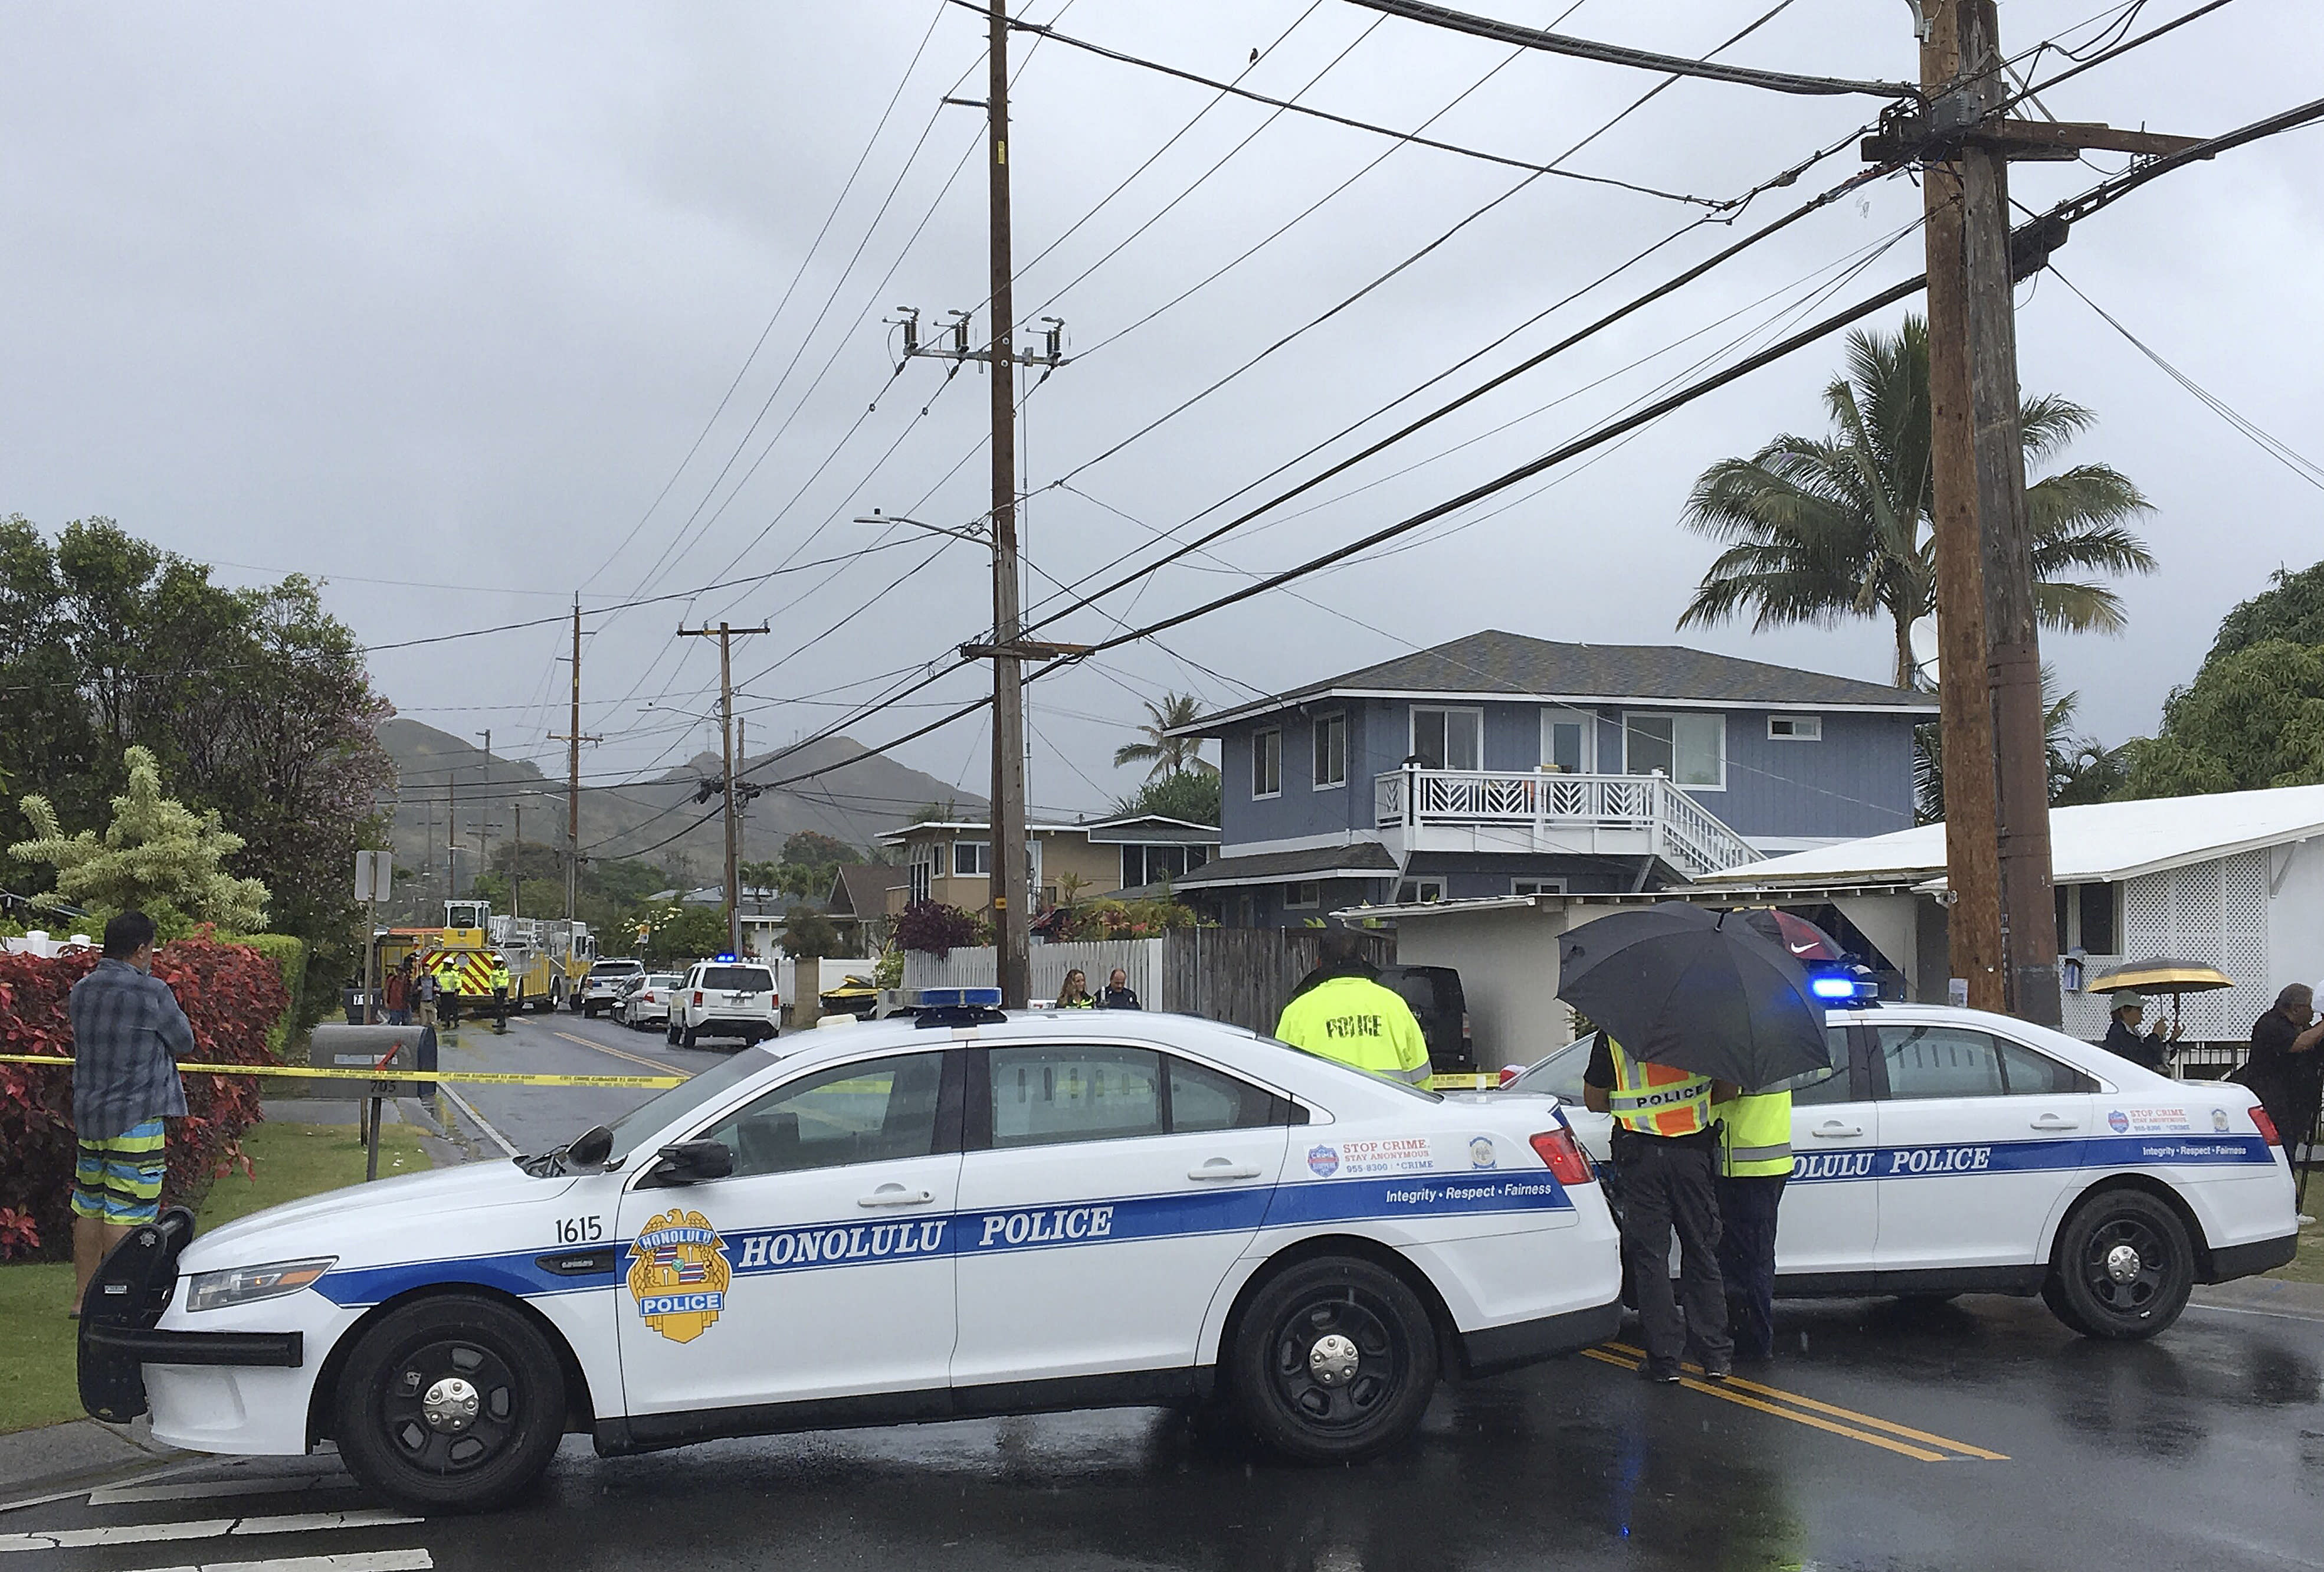 The Latest: Hawaii lawmaker seeks helicopter restrictions